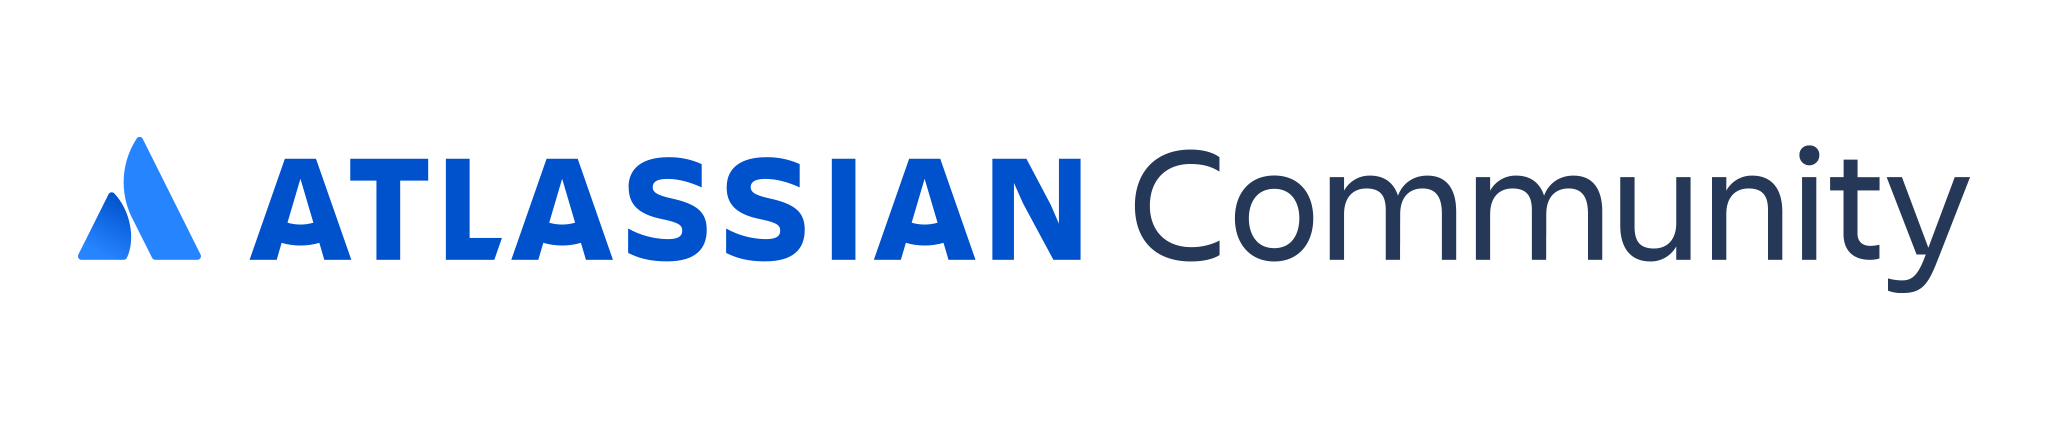 Atlassian Community